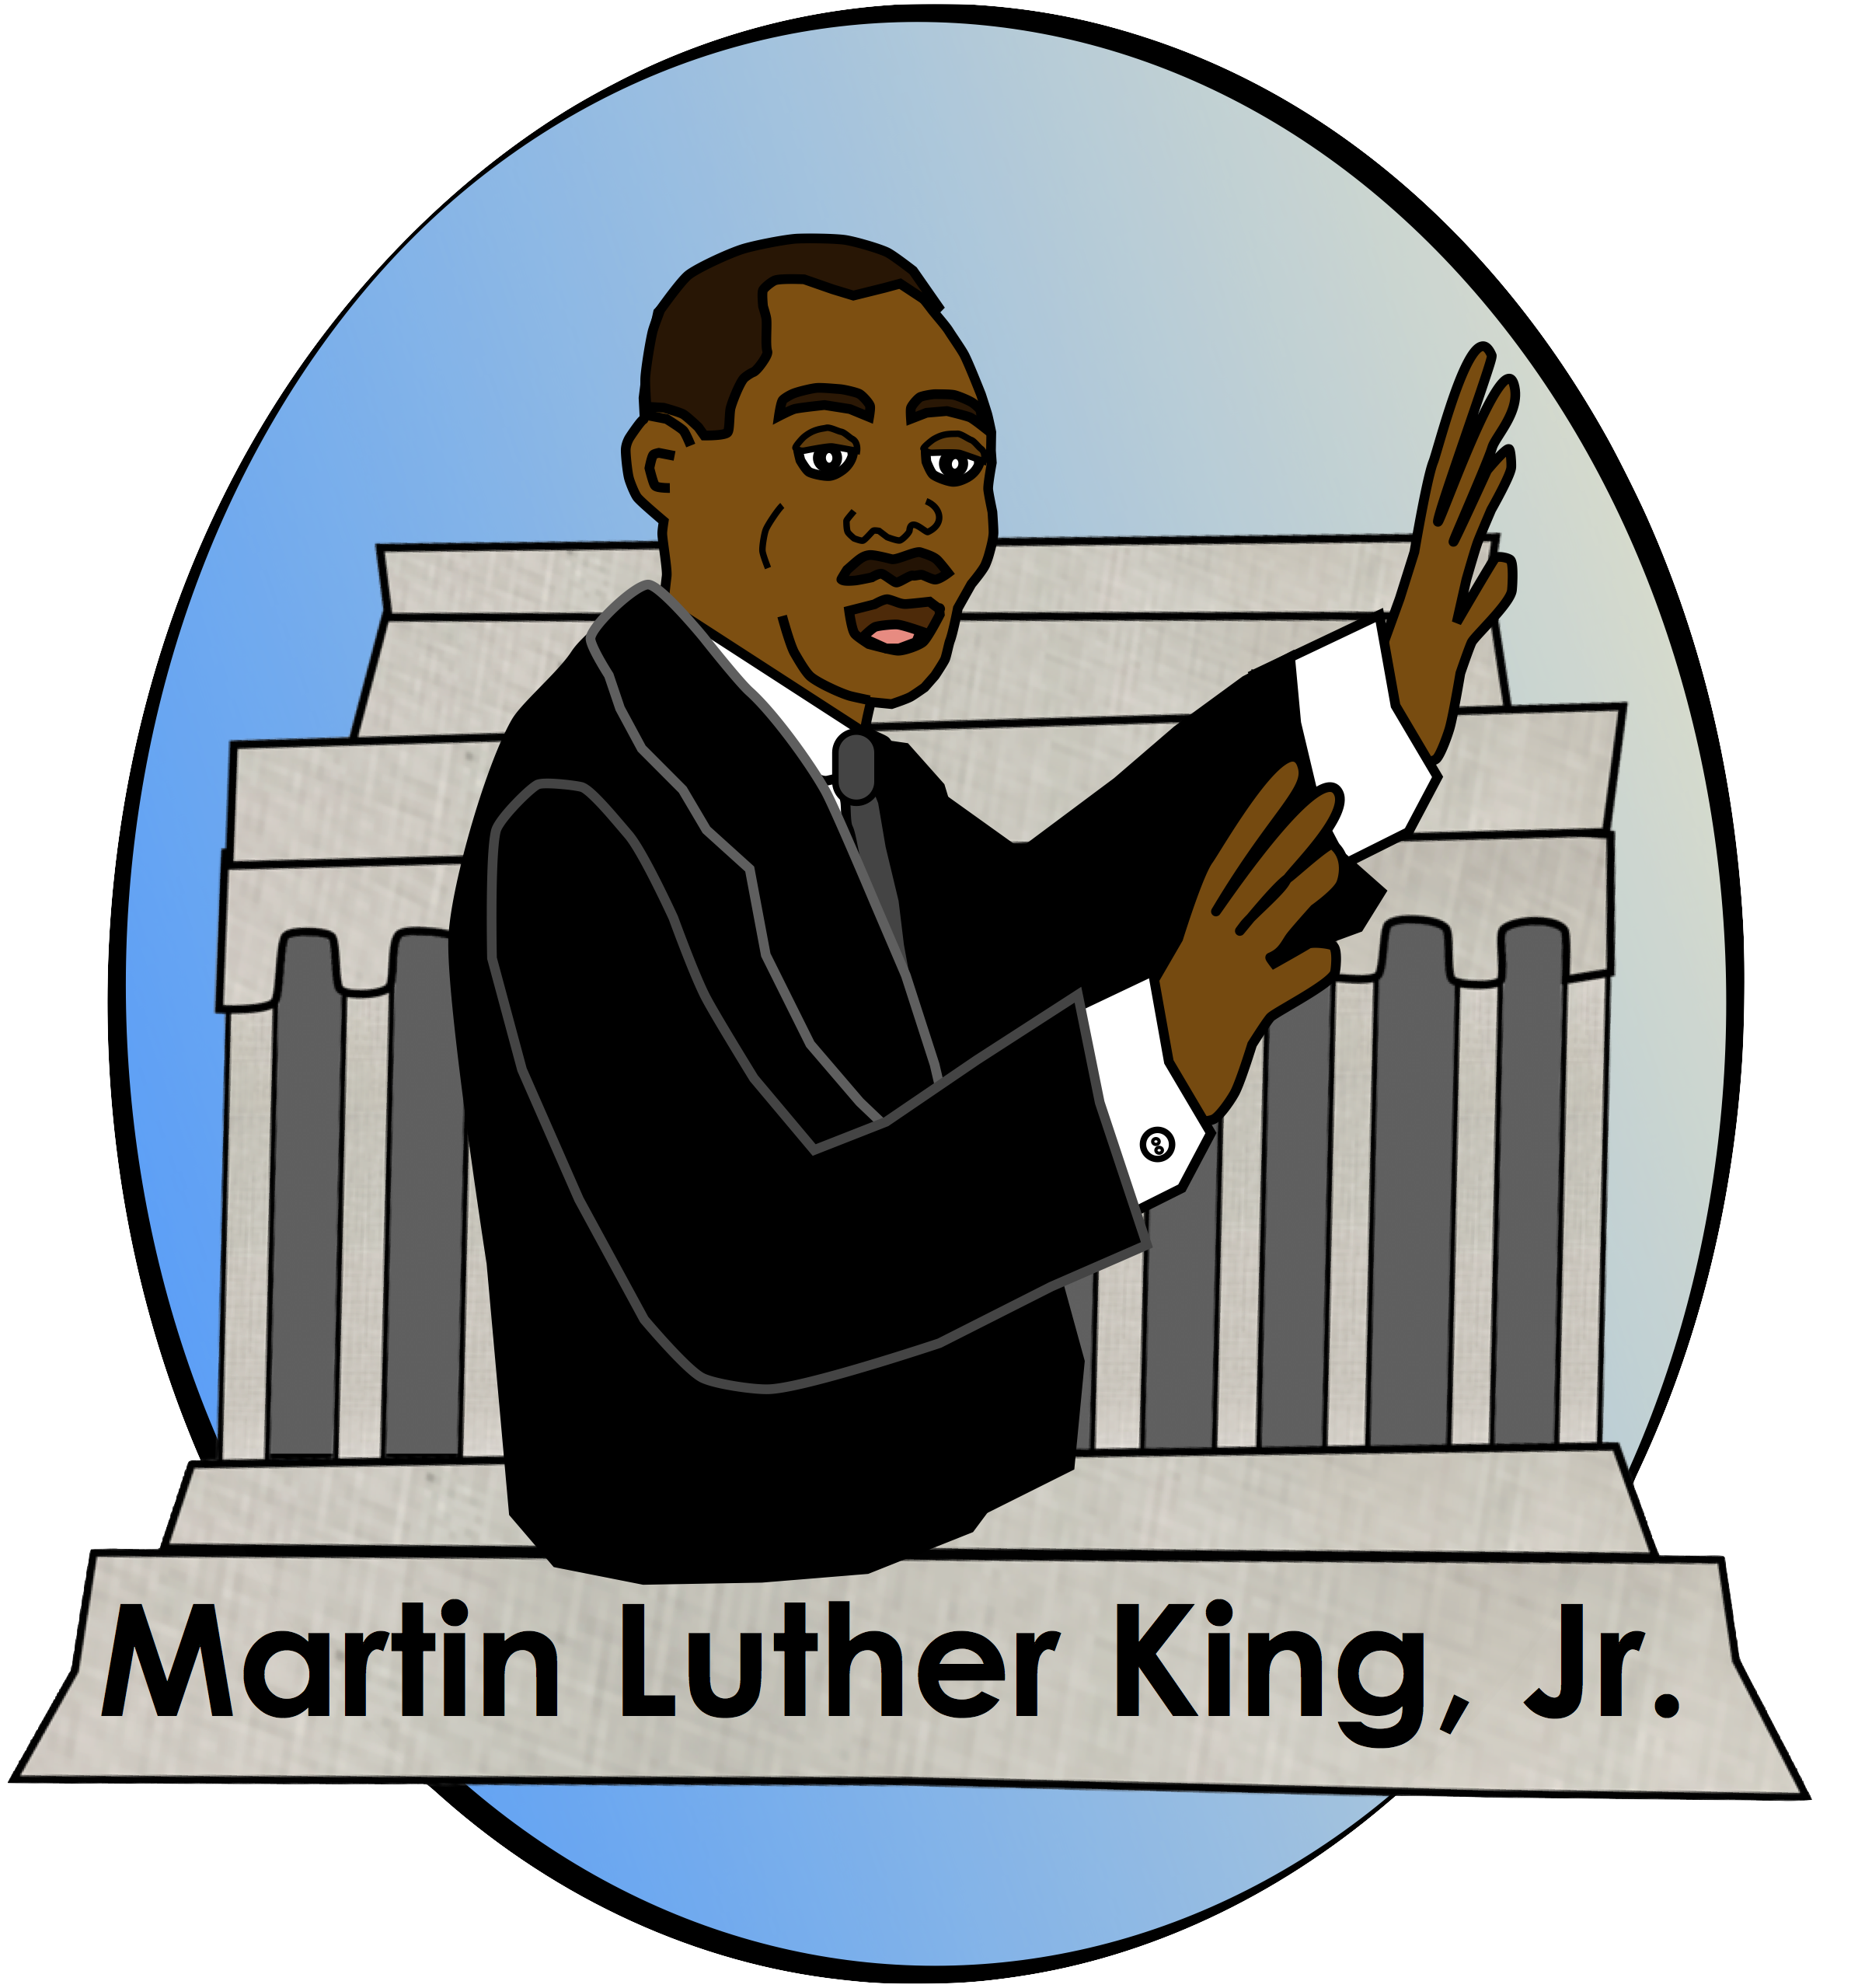 free martin luther king jr clip art from charlotte s clips [ 2409 x 2558 Pixel ]